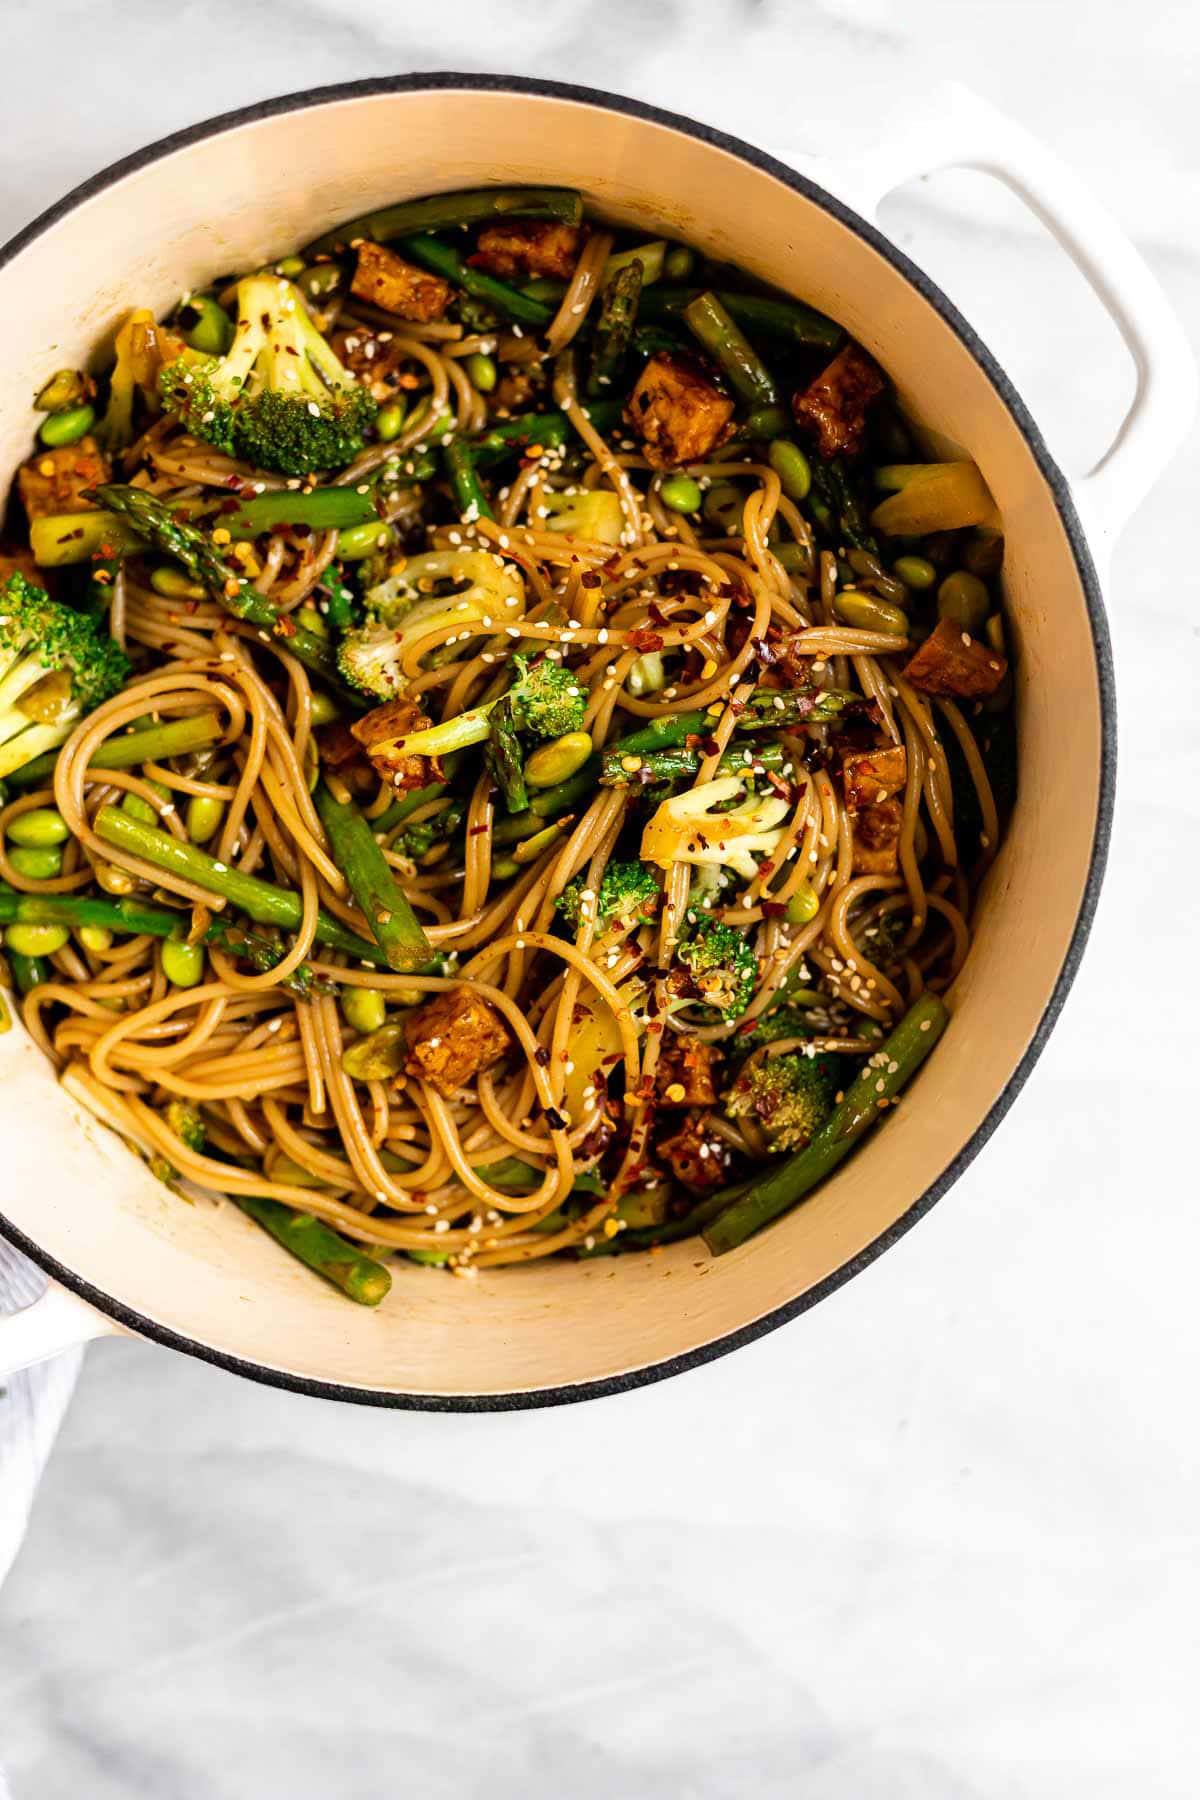 Final recipe in a pot with noodles, broccoli and tofu.